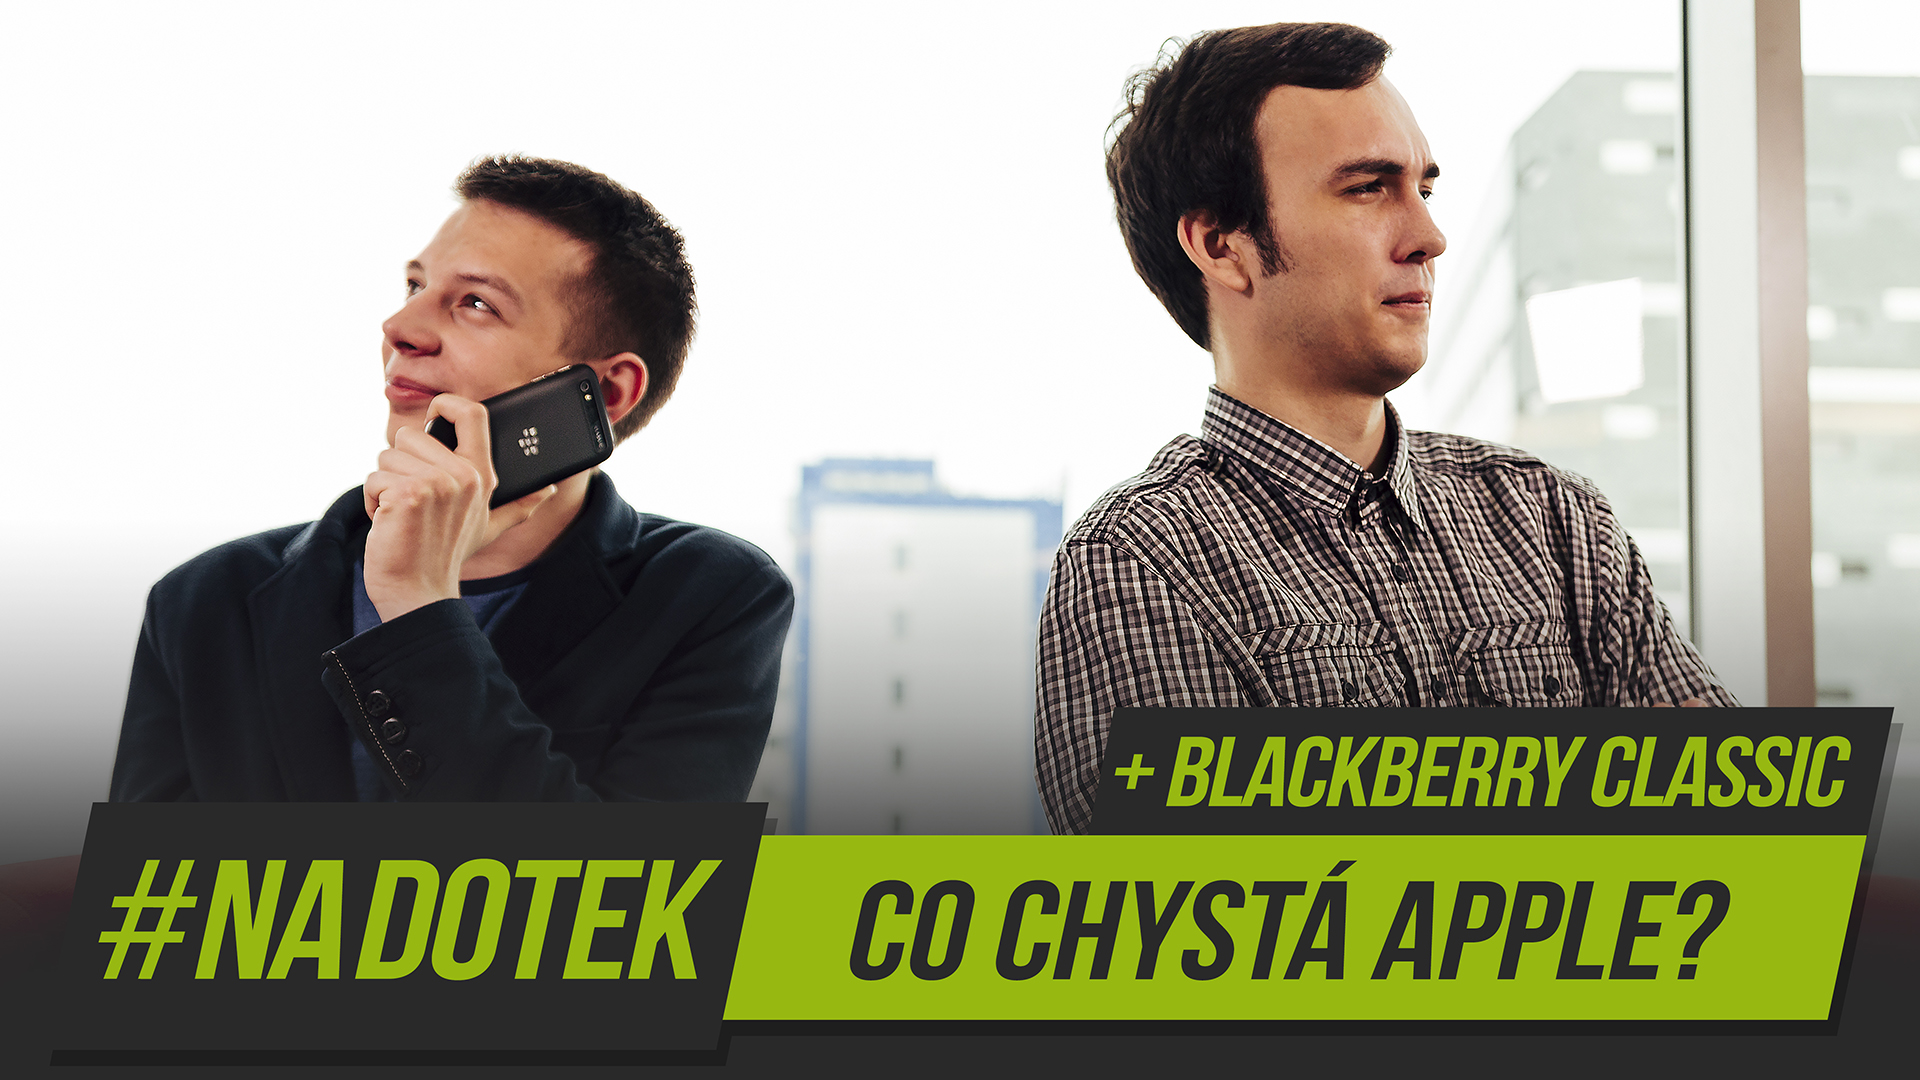 #NaDotek – Apple Watch + BlackBerry Classic